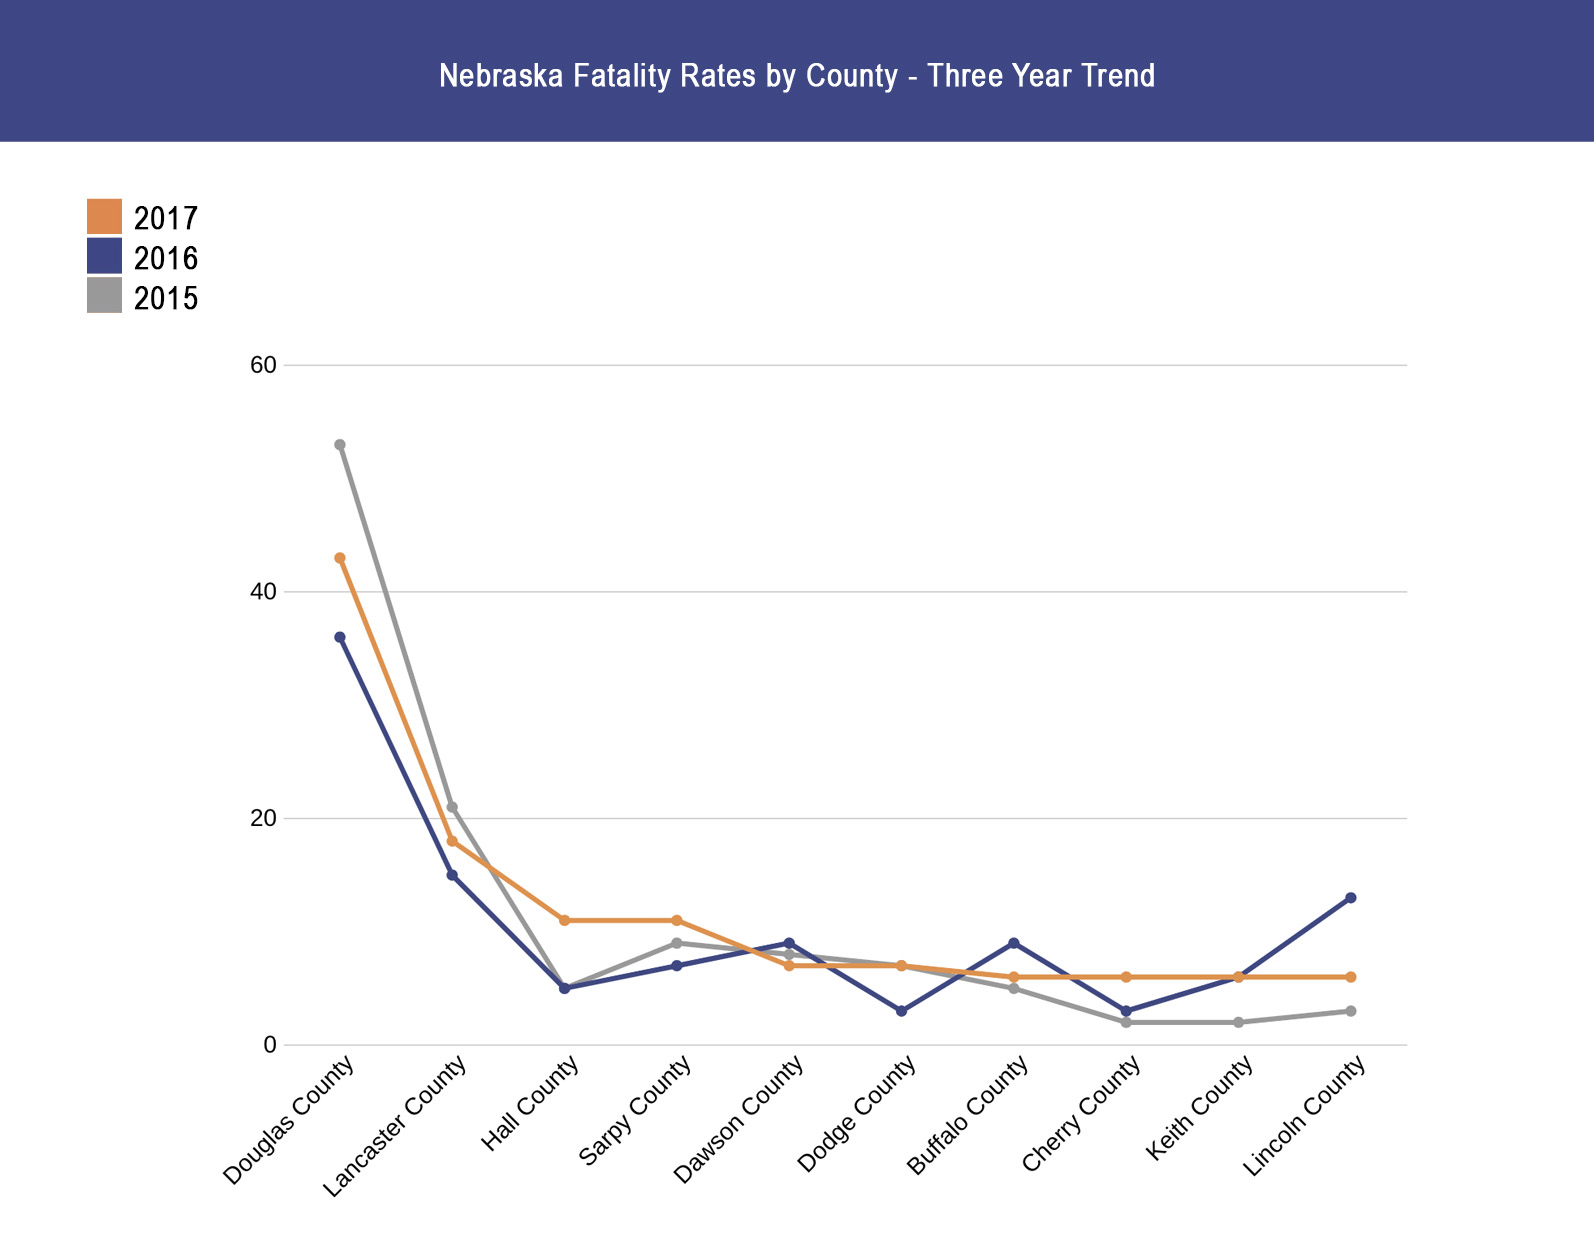 Nebraska Fatality Rates by County - Three Year Trend